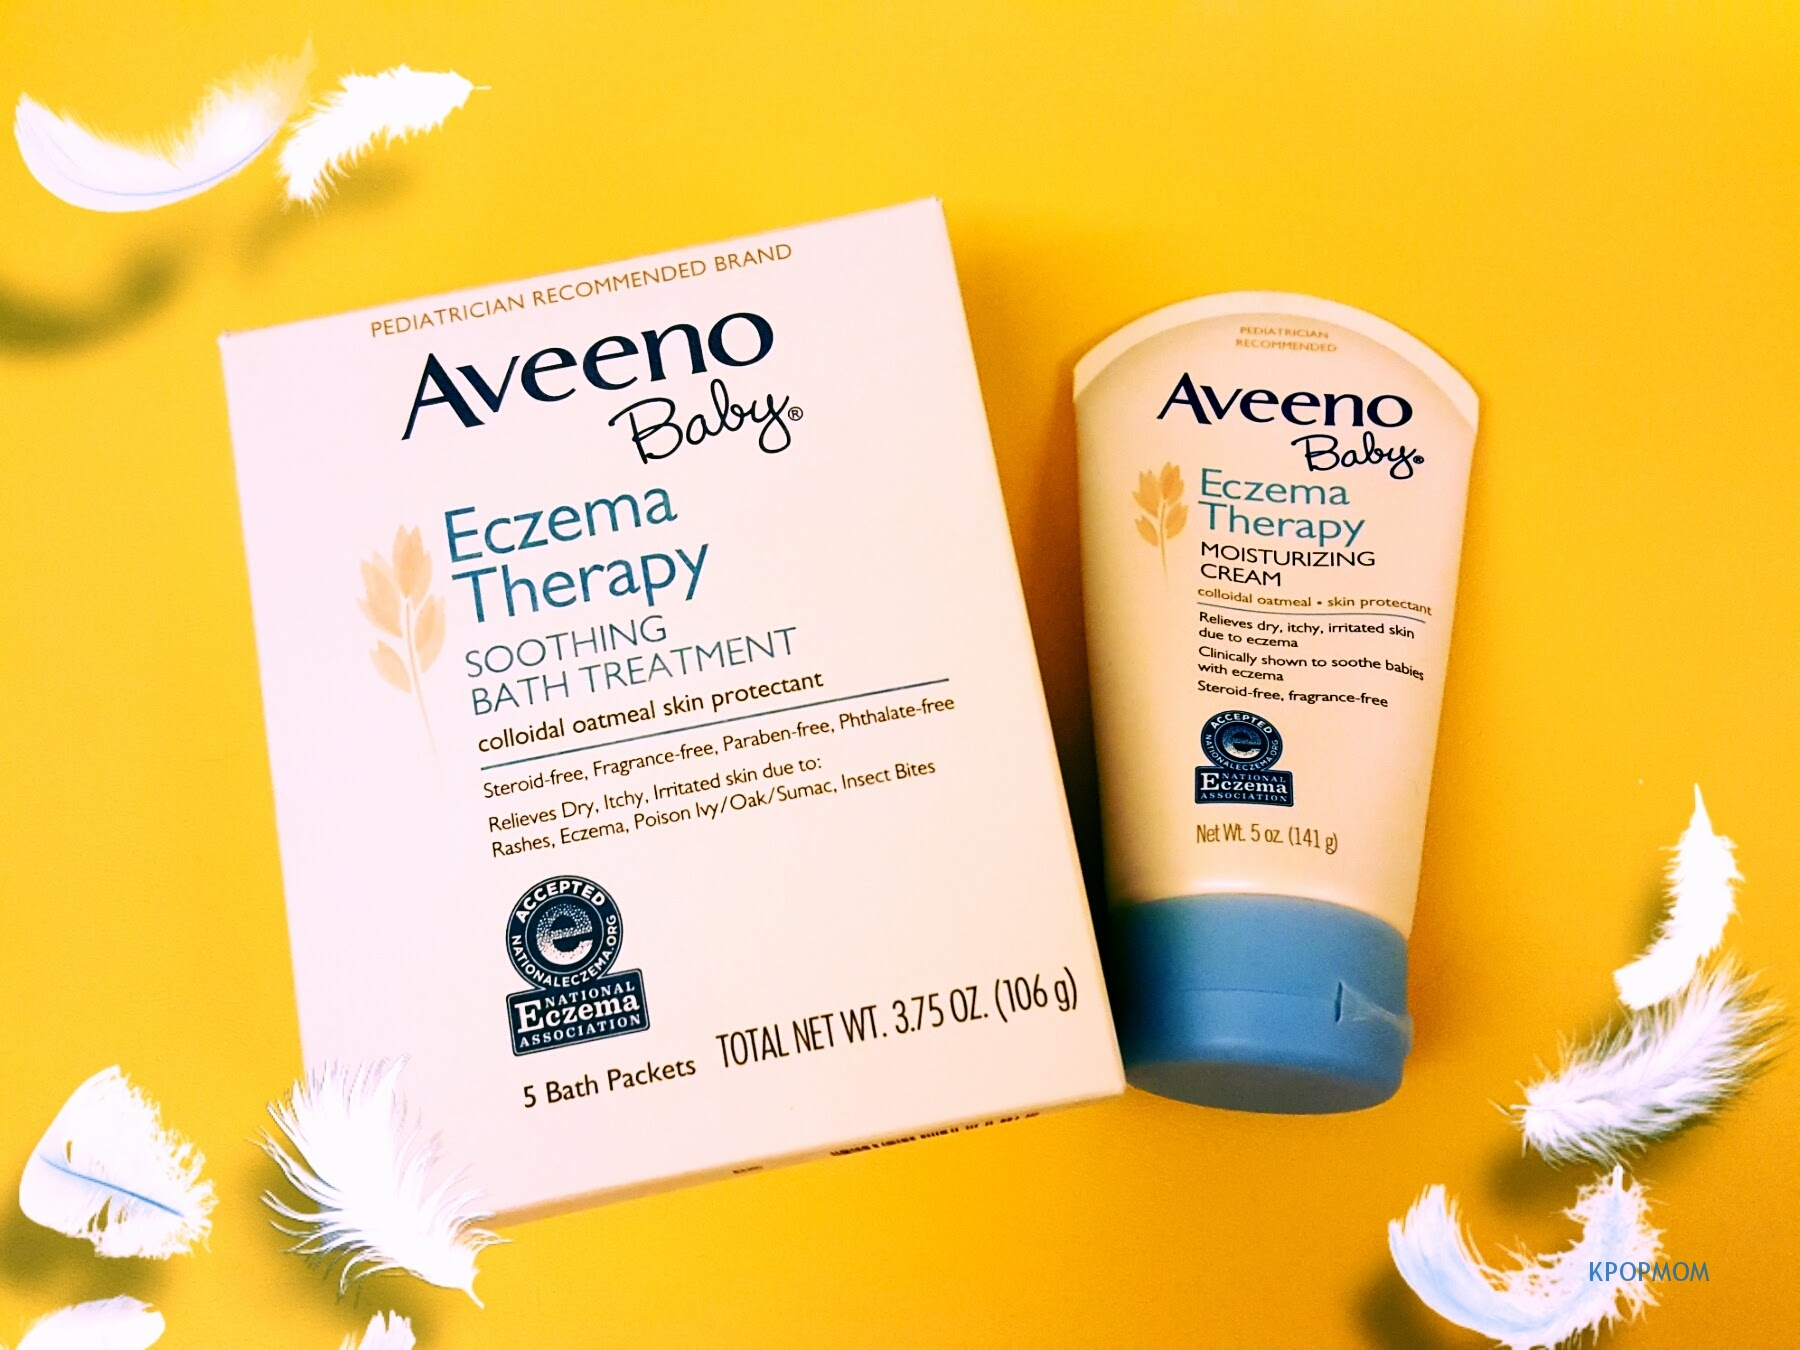 KPOPMOM Tries Aveeno Baby Products - KPOPMOM